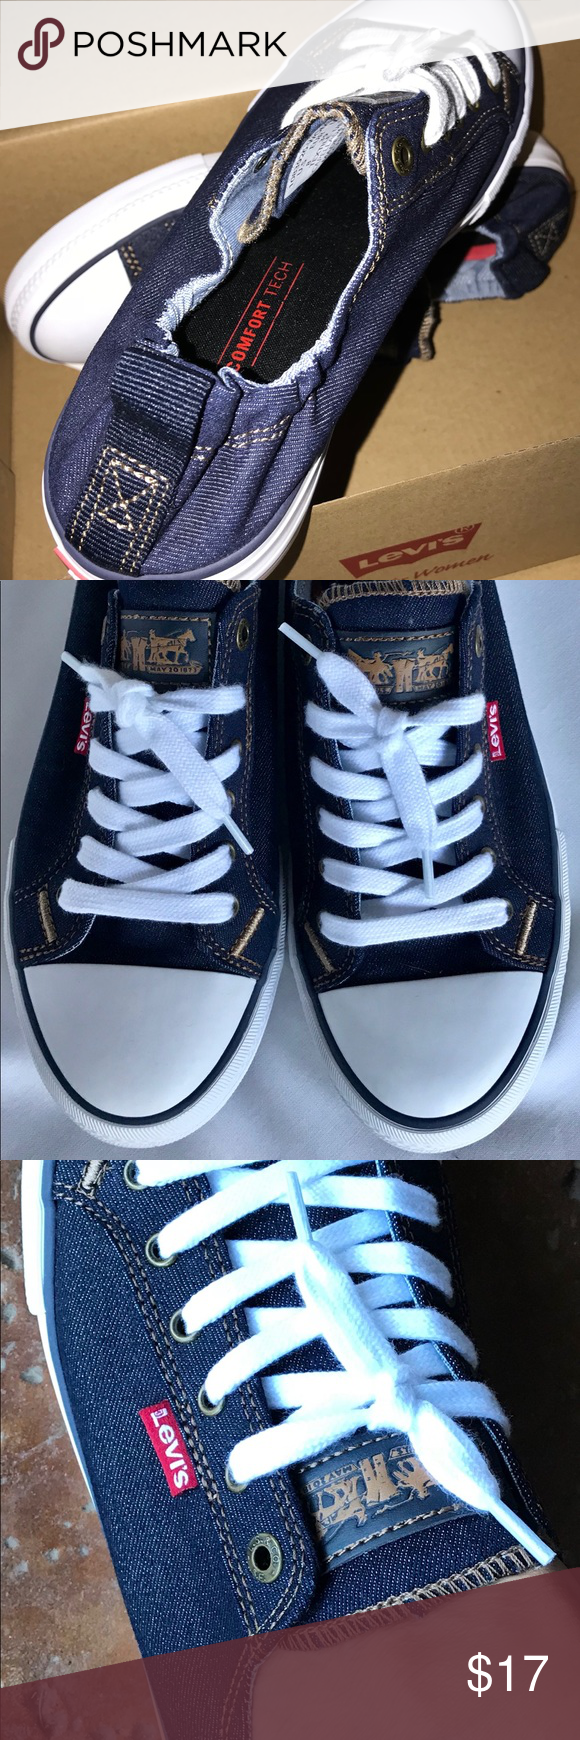 f716ac16333f6e Levi s Women Stan G Dark Denim Canvas Sneakers 8 Tried these on once never  wore them